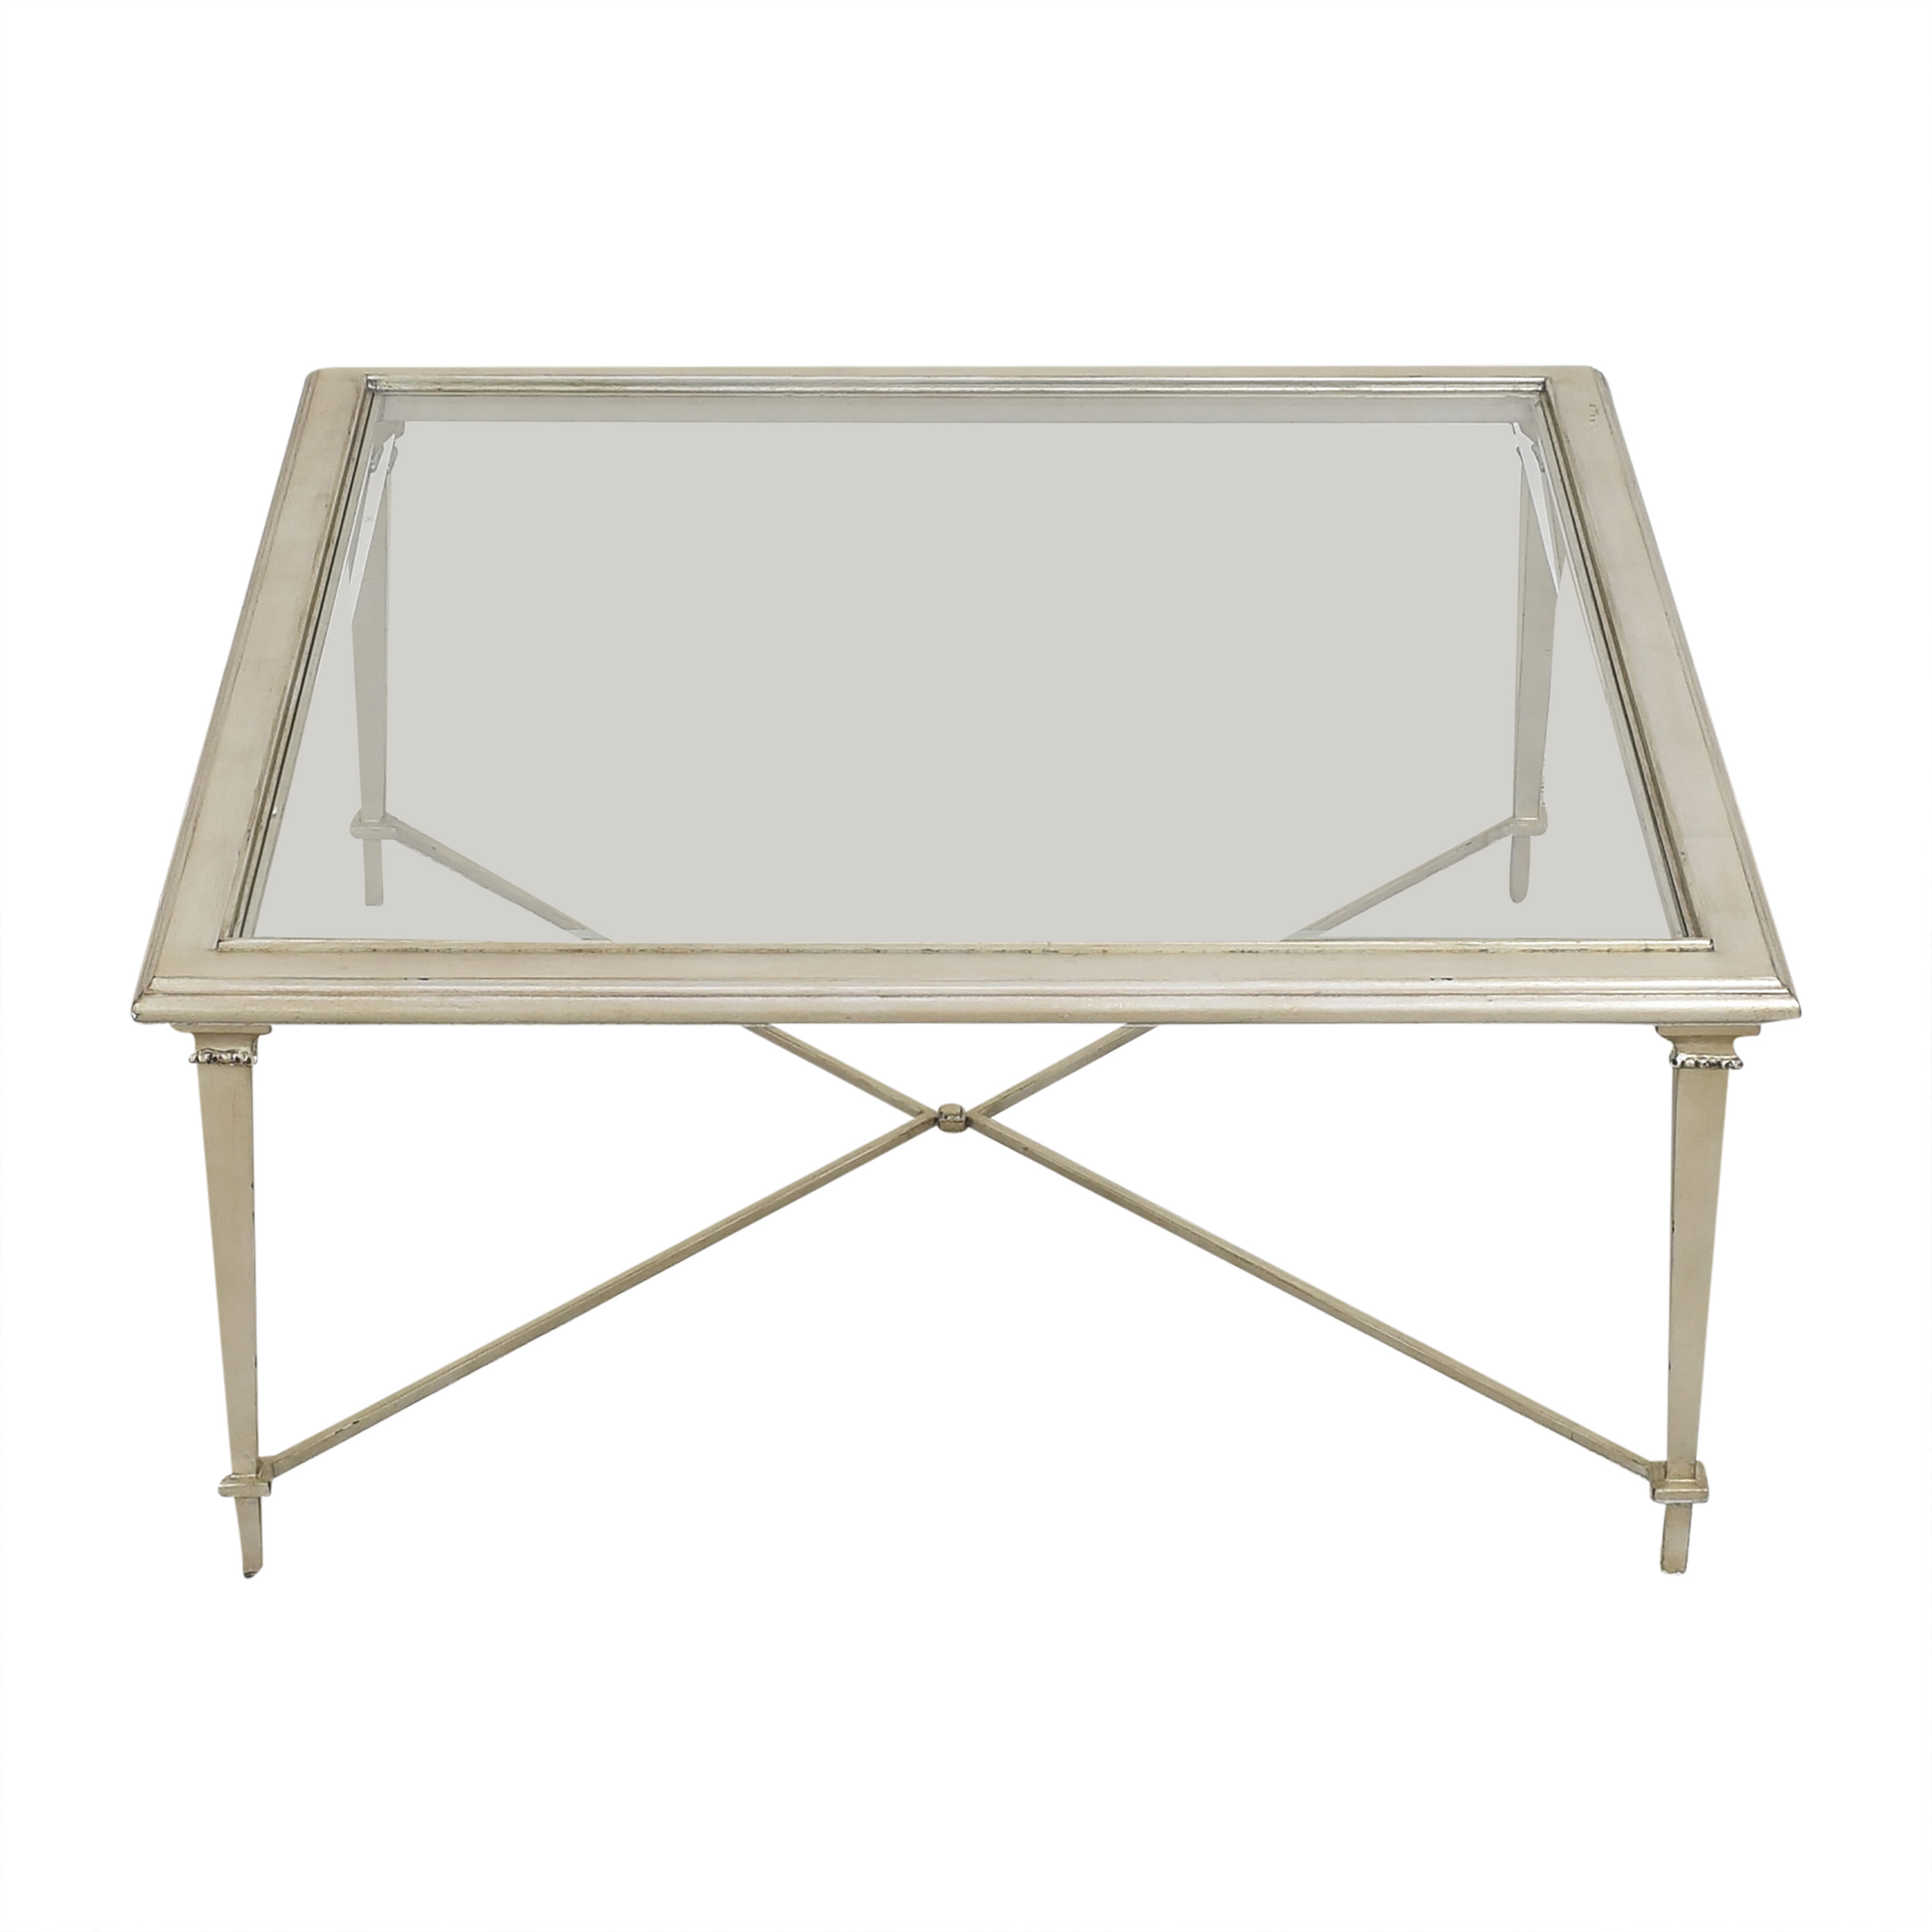 shop Scully & Scully Bristol Square Coffee Table Scully & Scully Coffee Tables